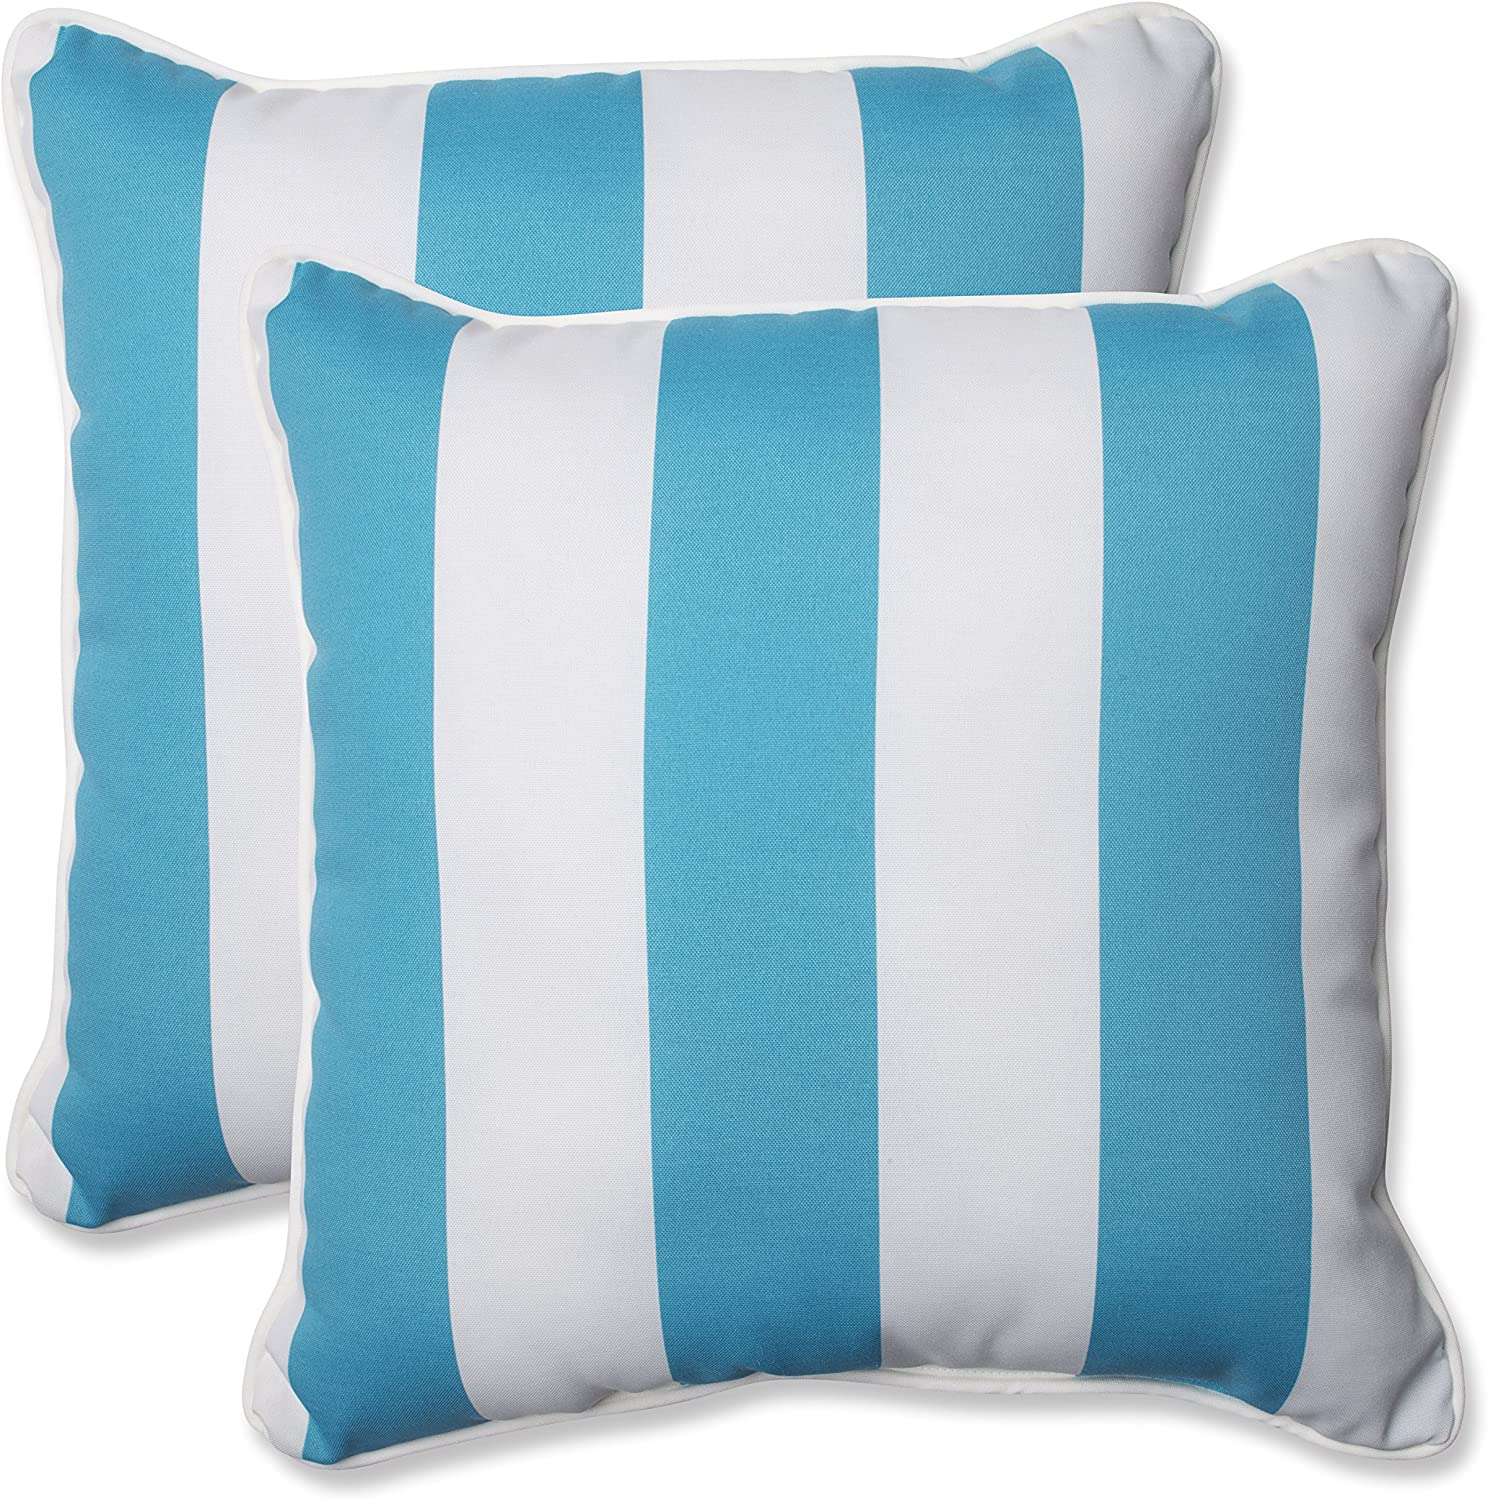 Pillow Perfect Outdoor Indoor Cabana Stripe Turquoise Square Pillows 18 5 X 18 5 2 Pack Home Kitchen